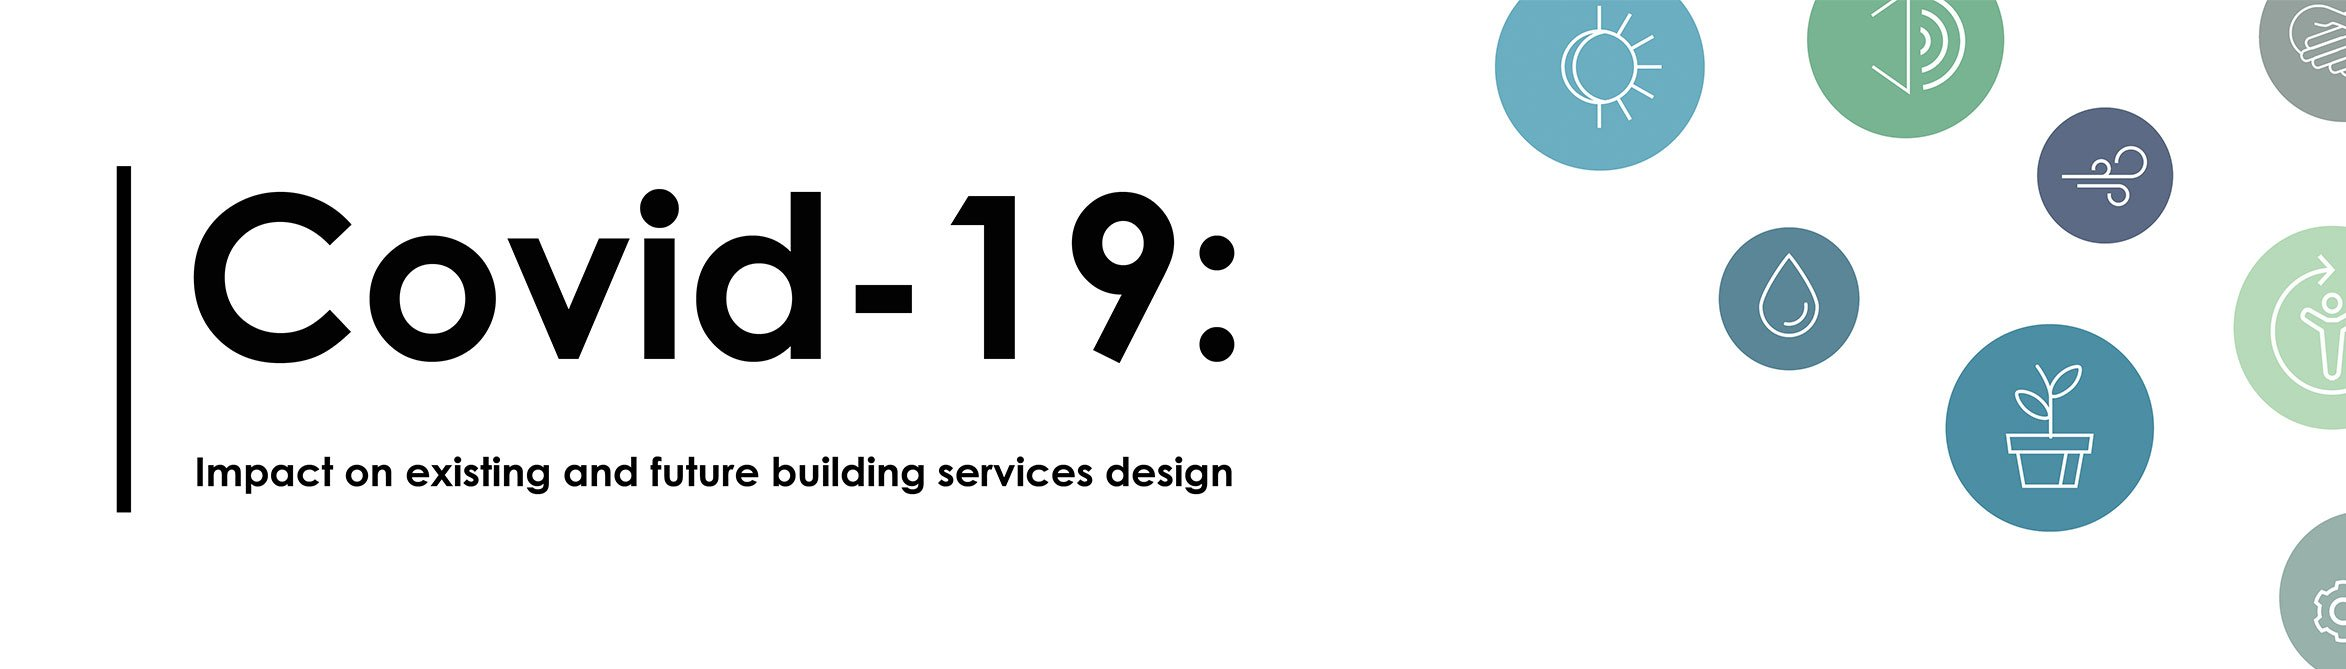 Covid 19 Impact on building services design